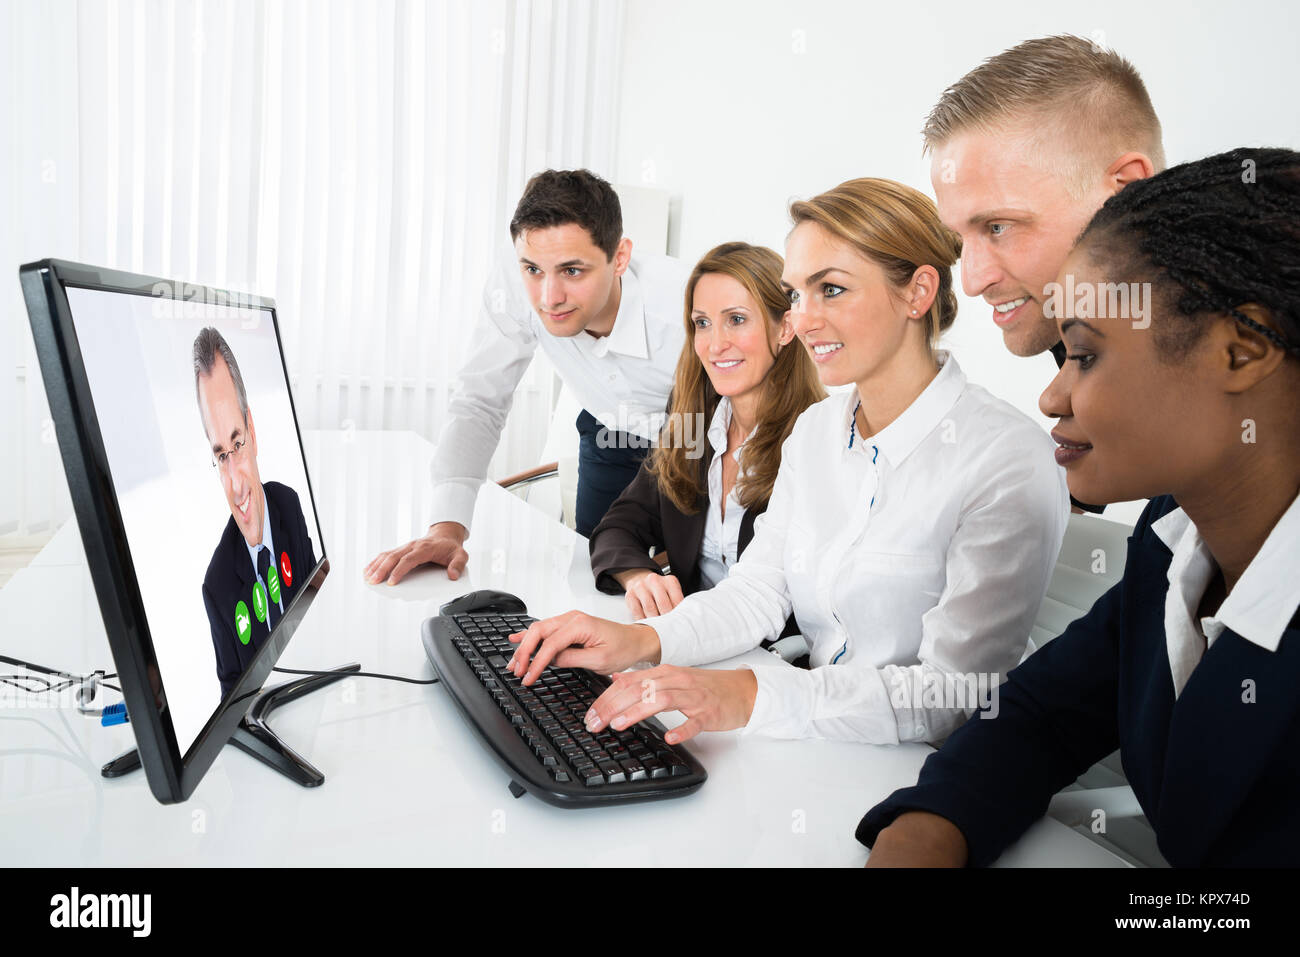 Businesspeople Videoconferencing On Computer - Stock Image